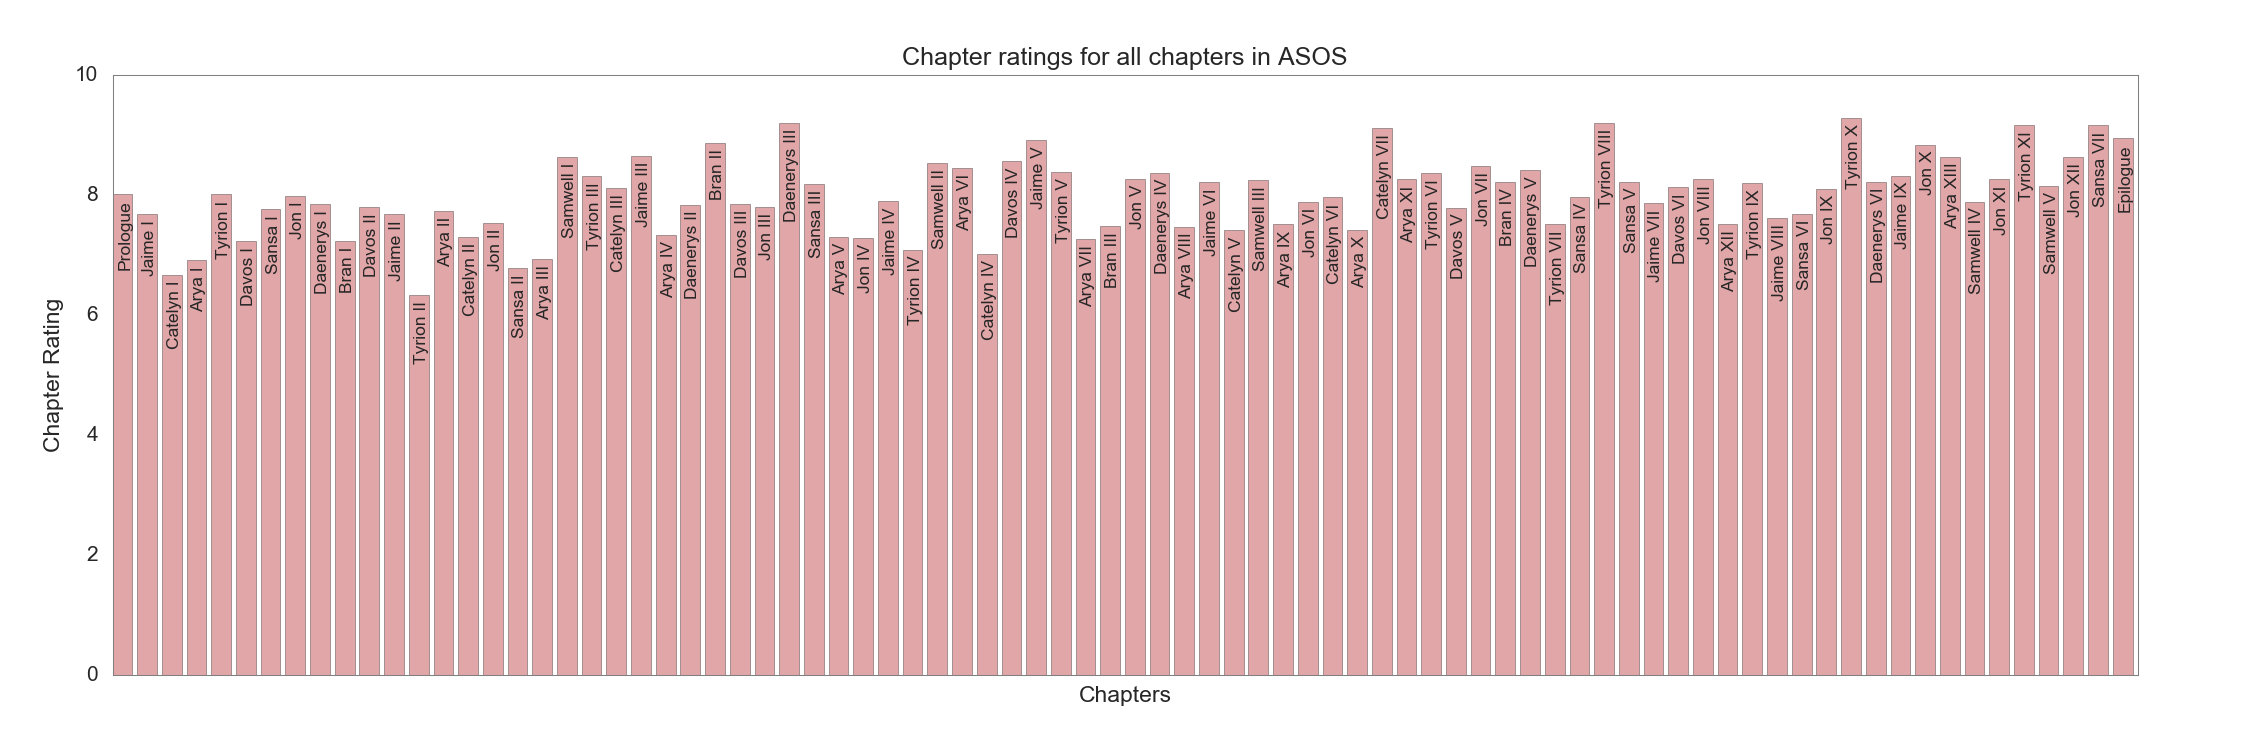 Chapter ratings in ASOS